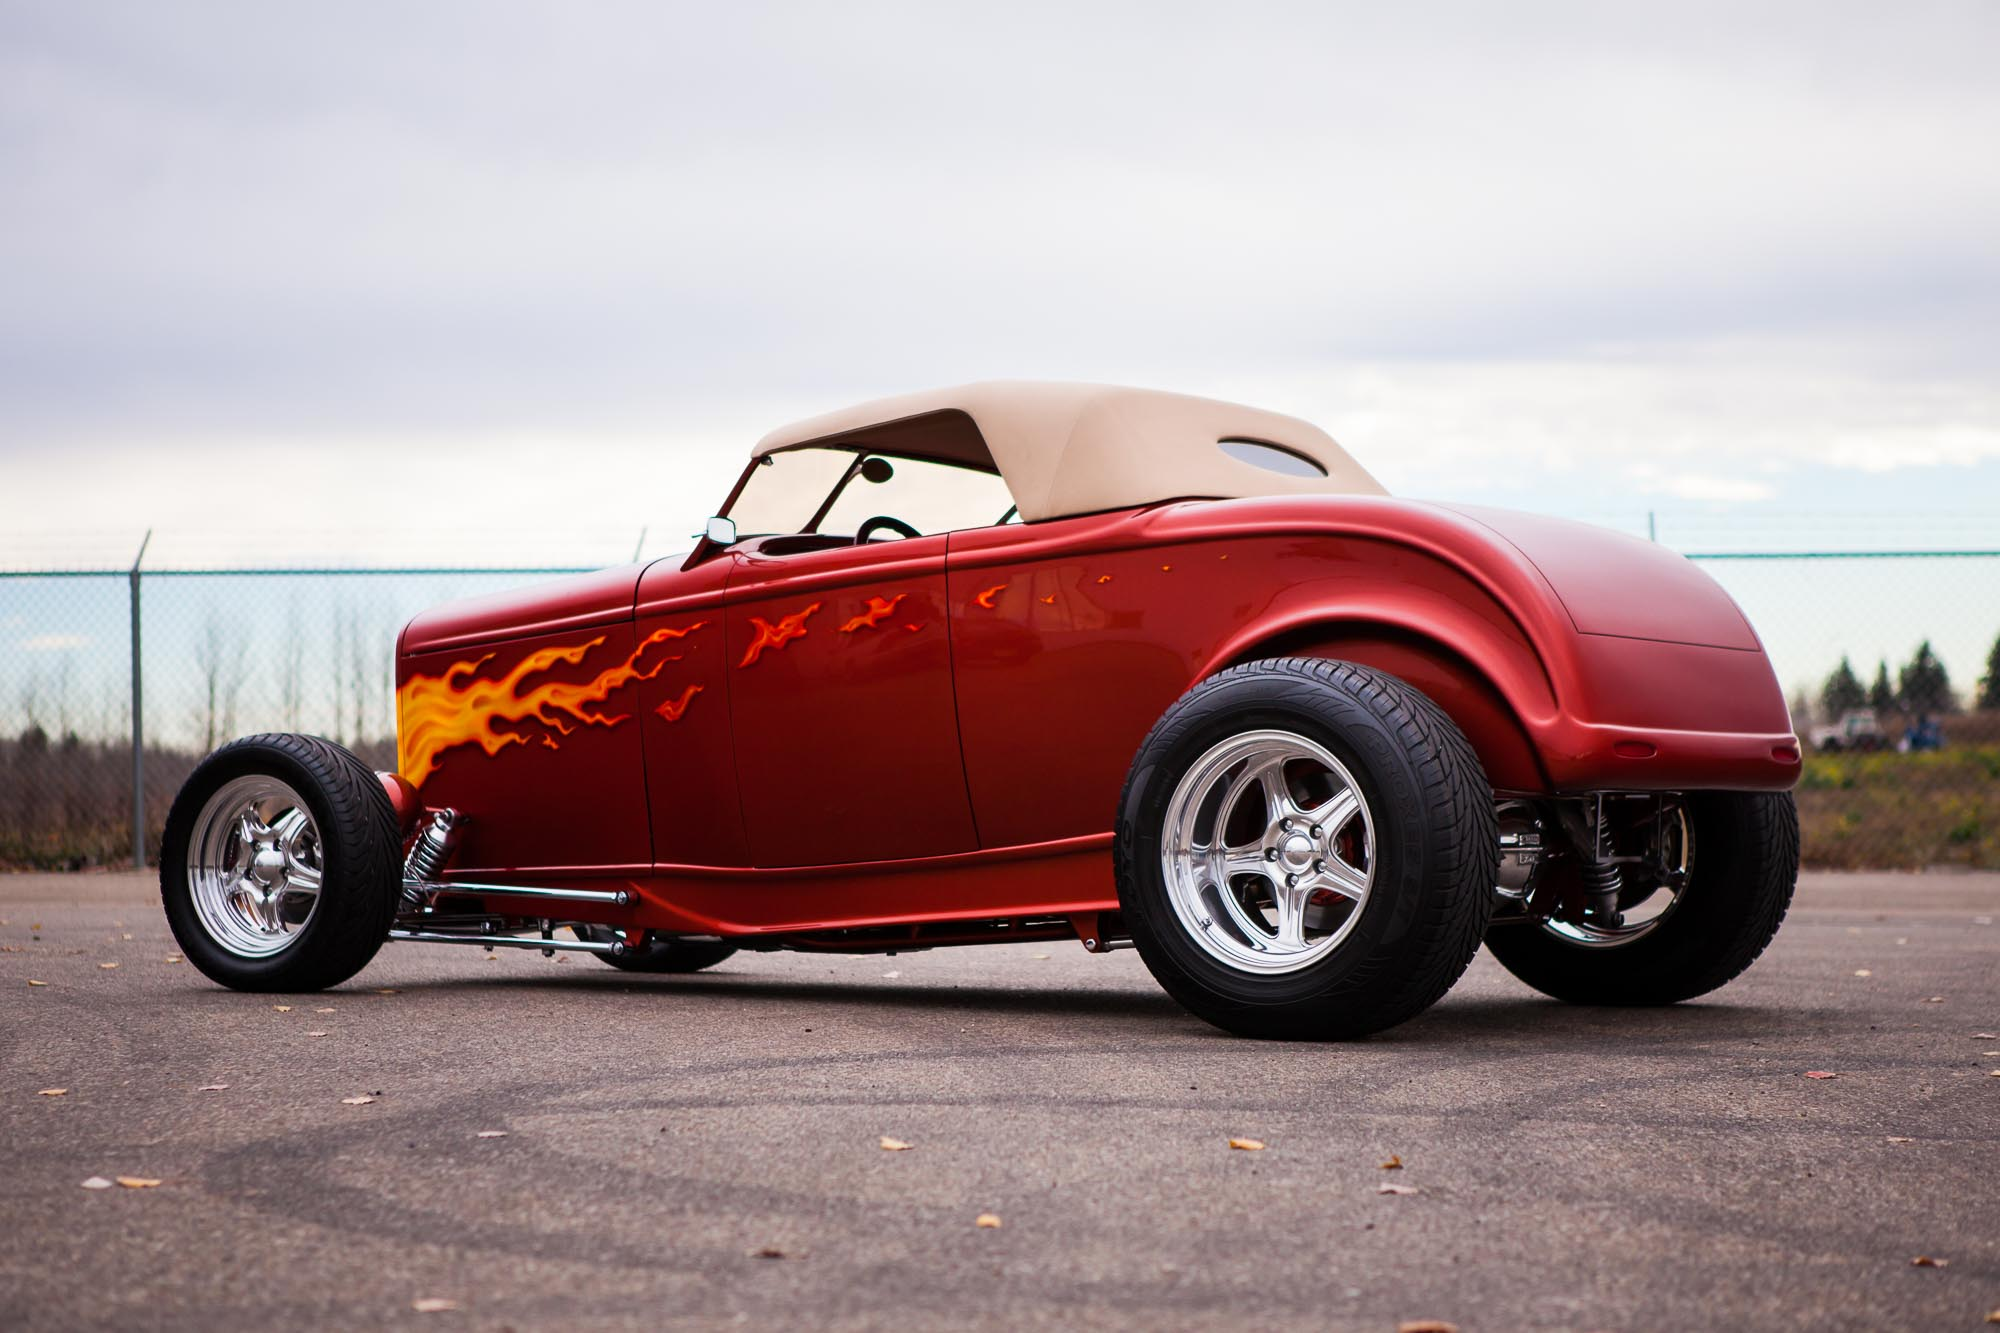 1932 Highboy Roadster - For Sale - The Iron Garage